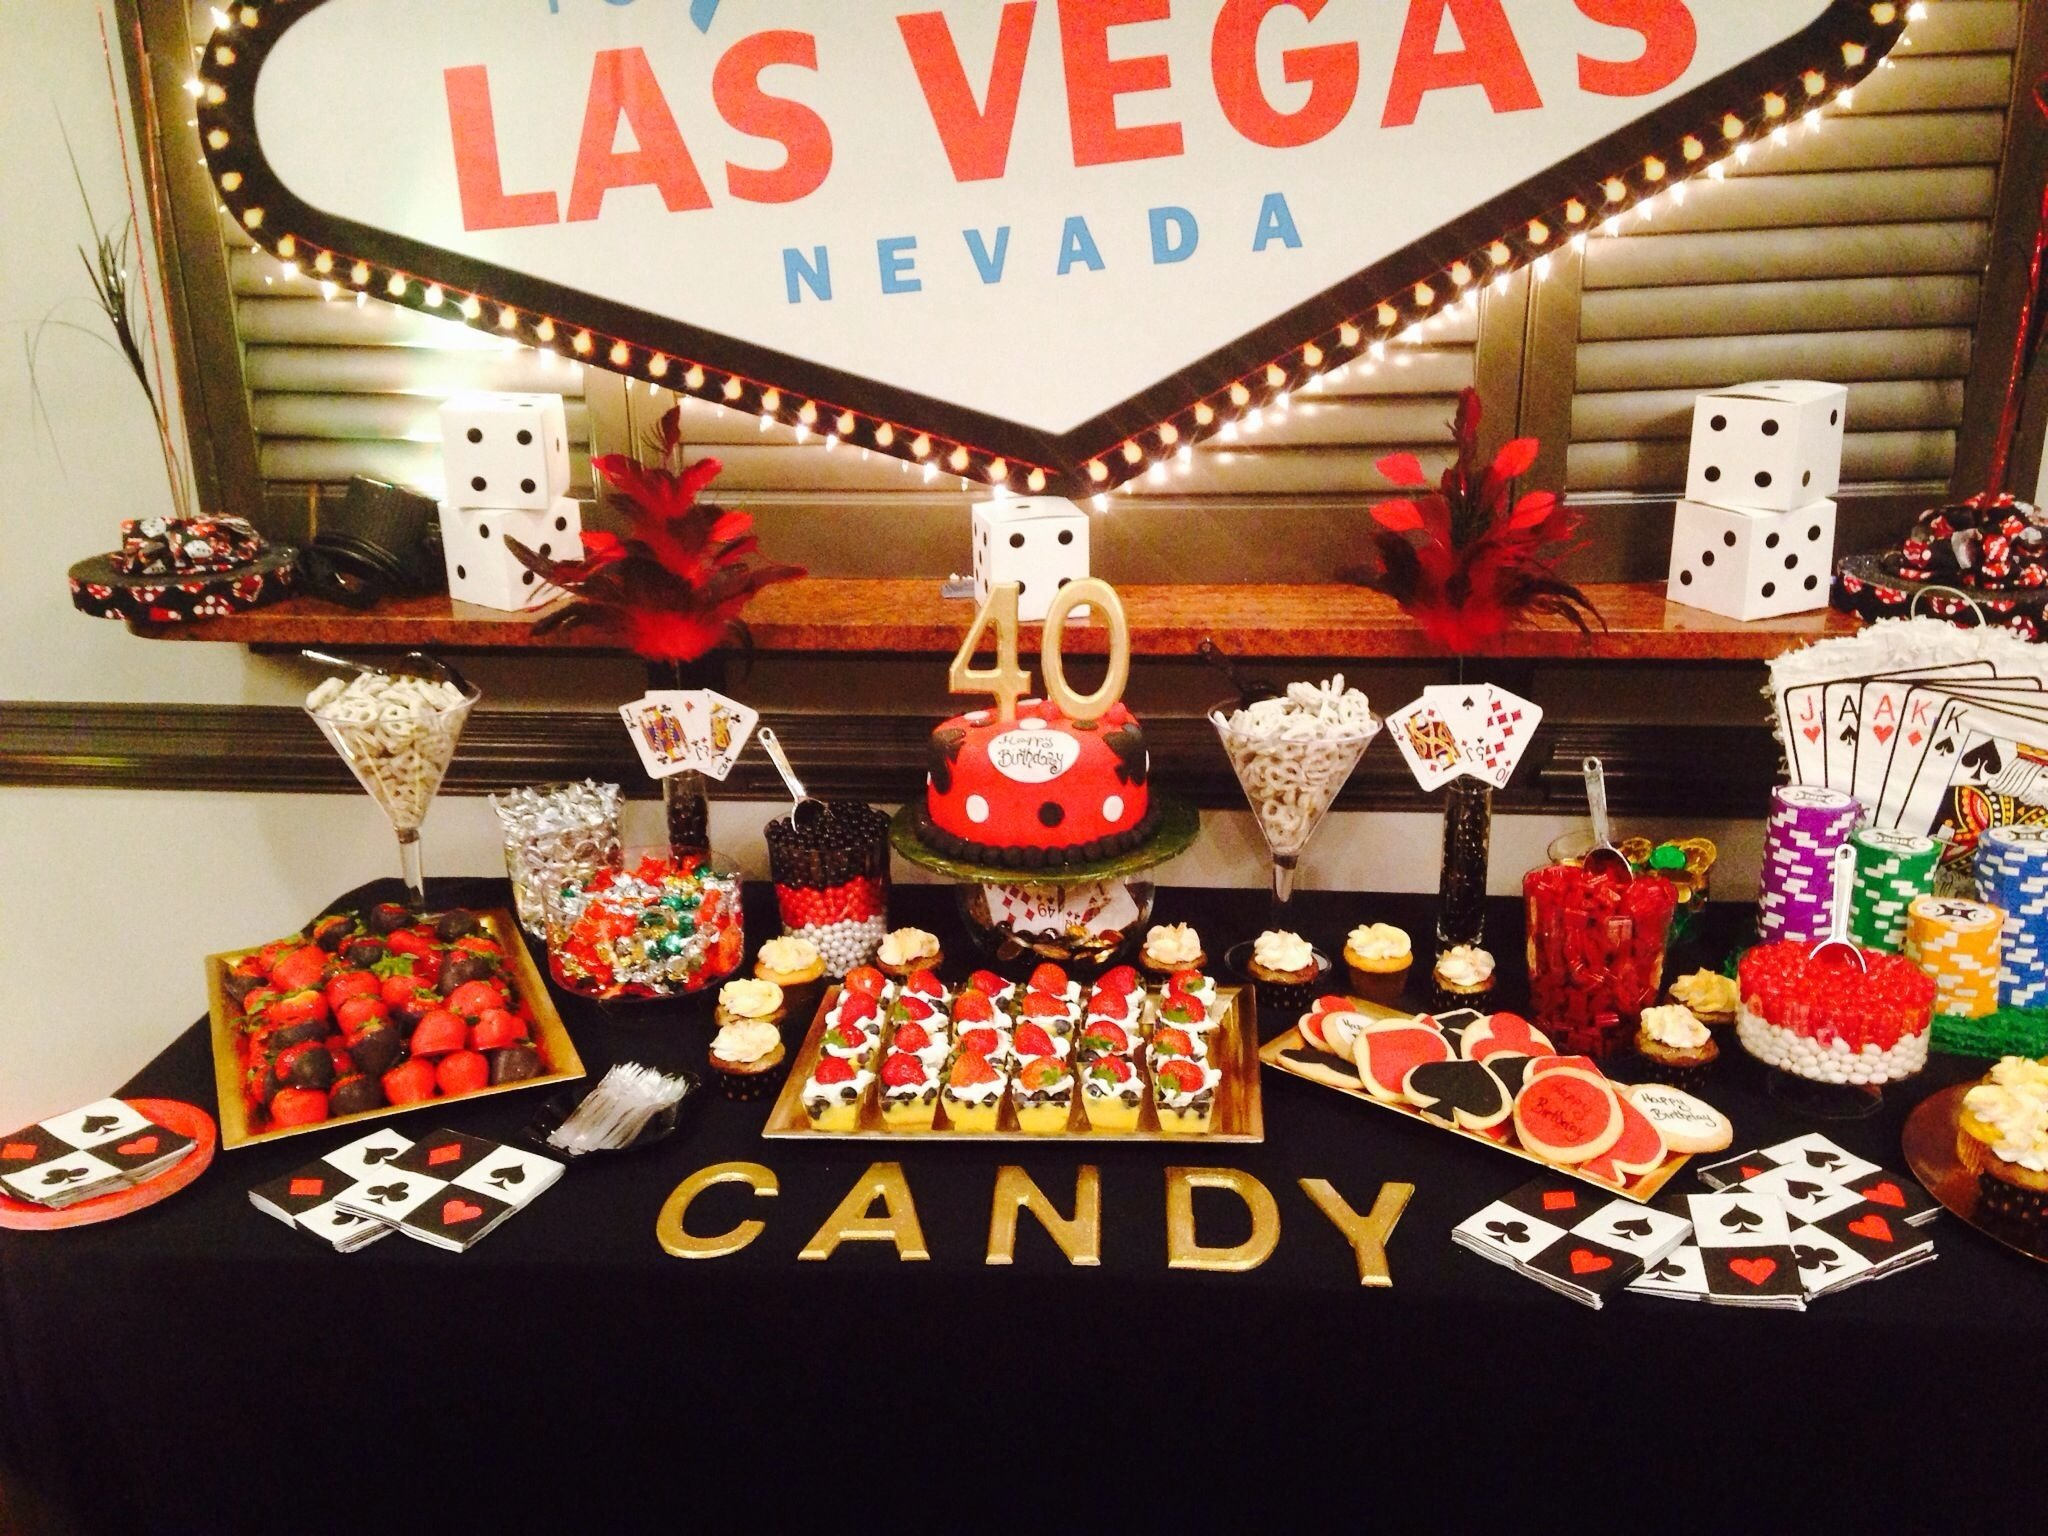 10 Stunning Las Vegas Birthday Party Ideas casino theme candy buffett my cakesbabycakesshingy 2020